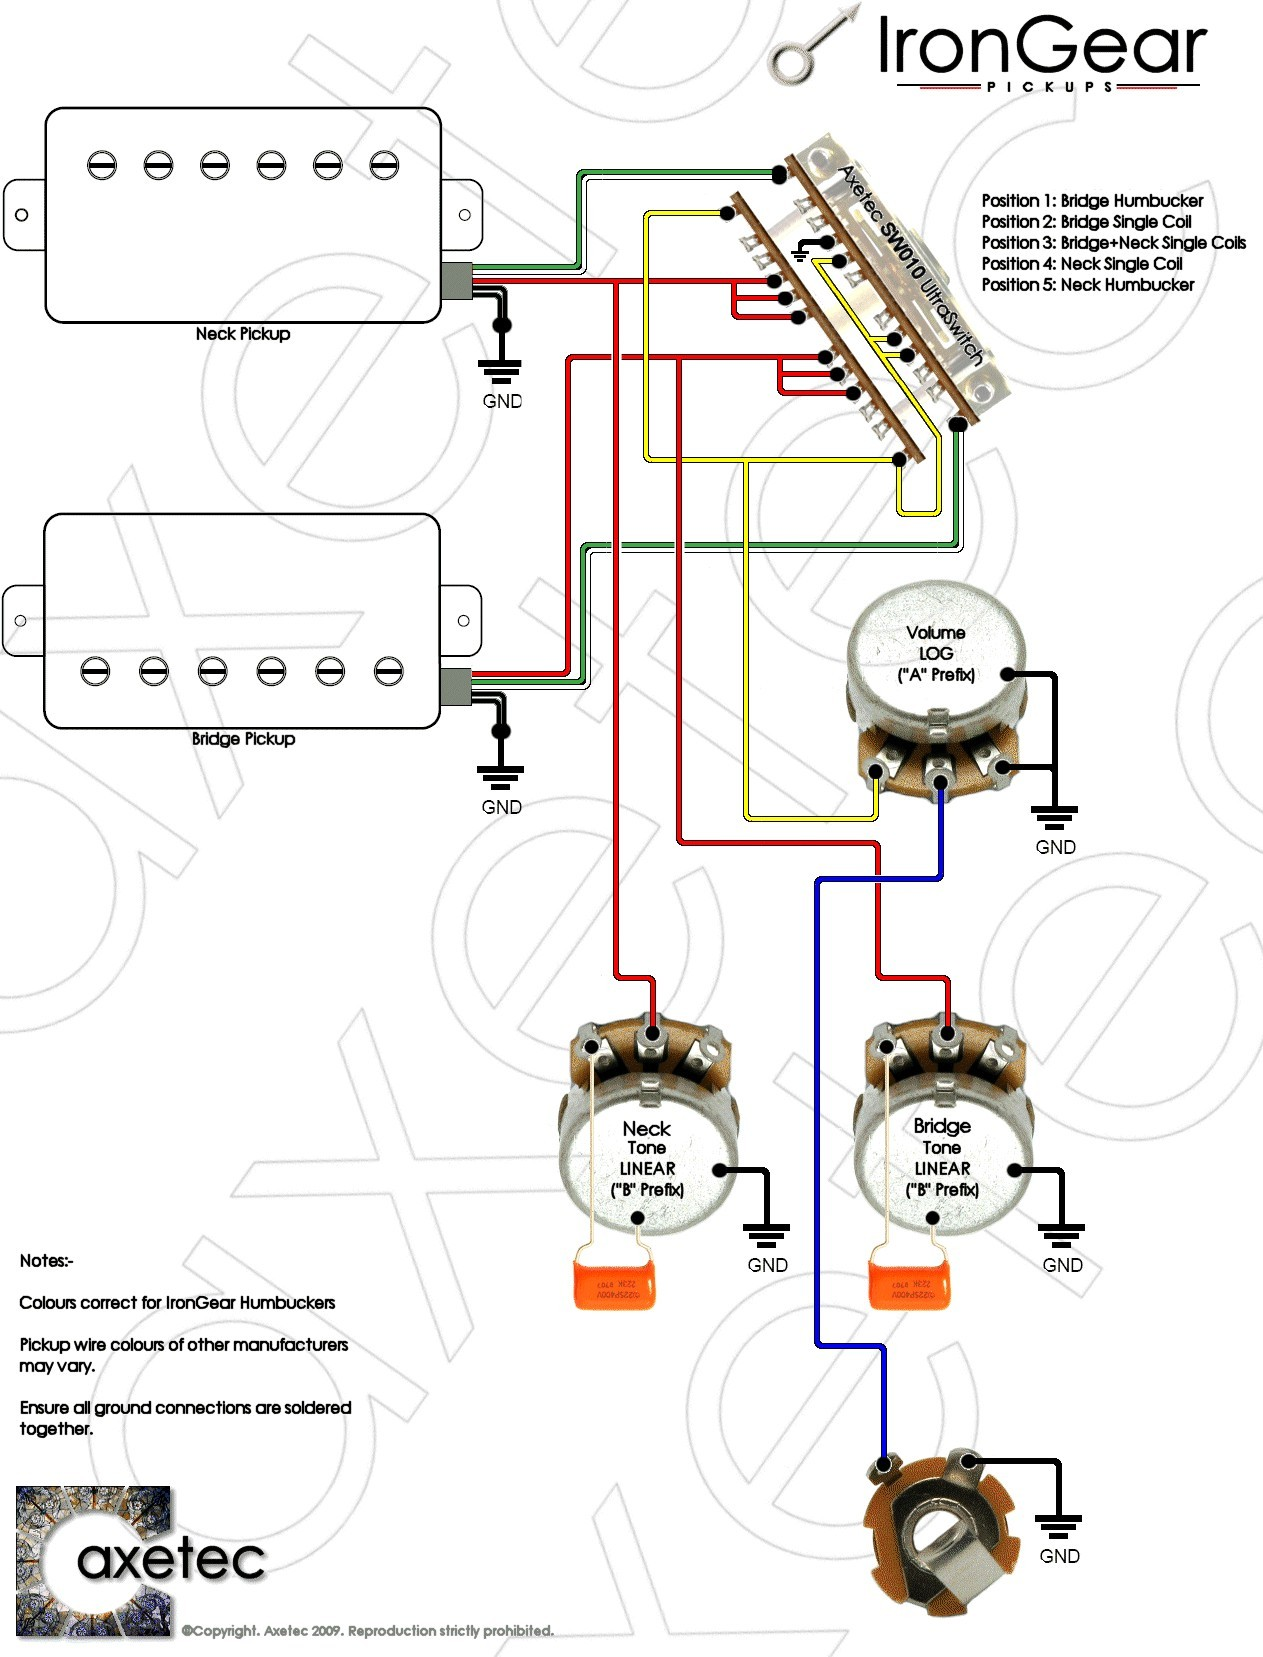 Guitar Wiring Diagrams 2 Pickups Electric Guitar Wiring Diagram E Pickup Inspirationa Guitar Wiring Of Guitar Wiring Diagrams 2 Pickups